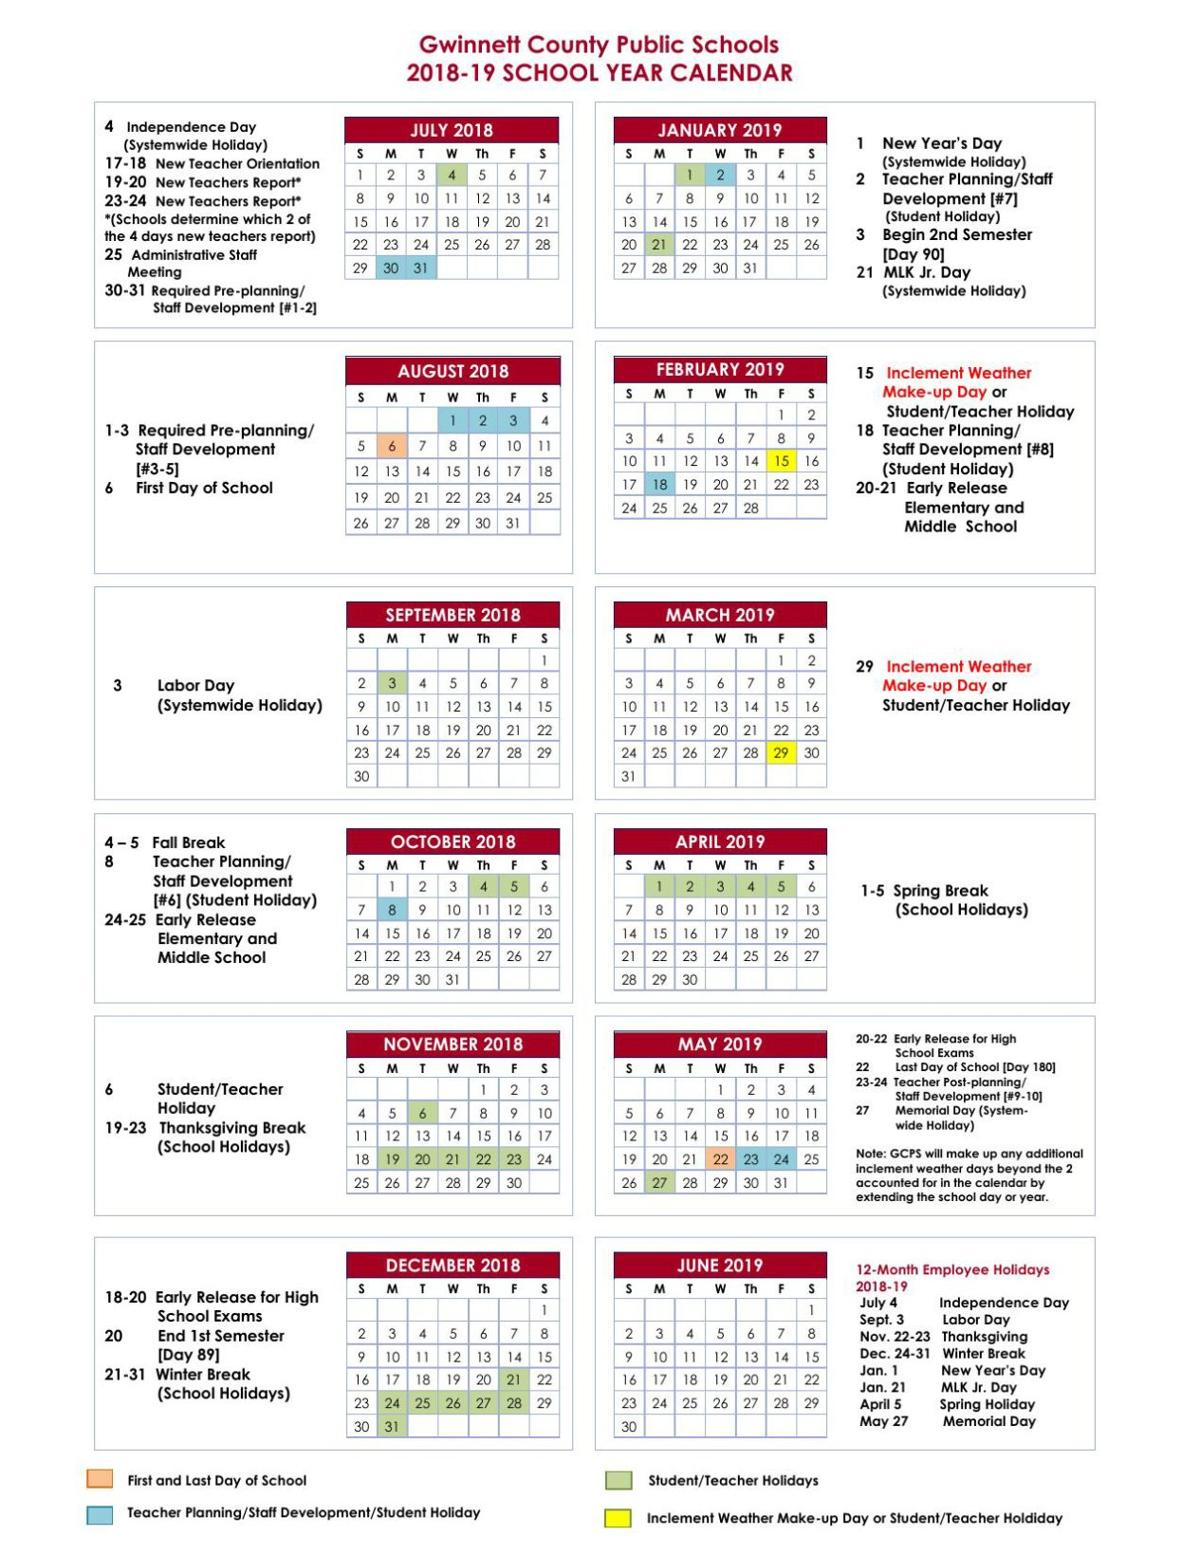 download pdf gcps 2018 19 calendar